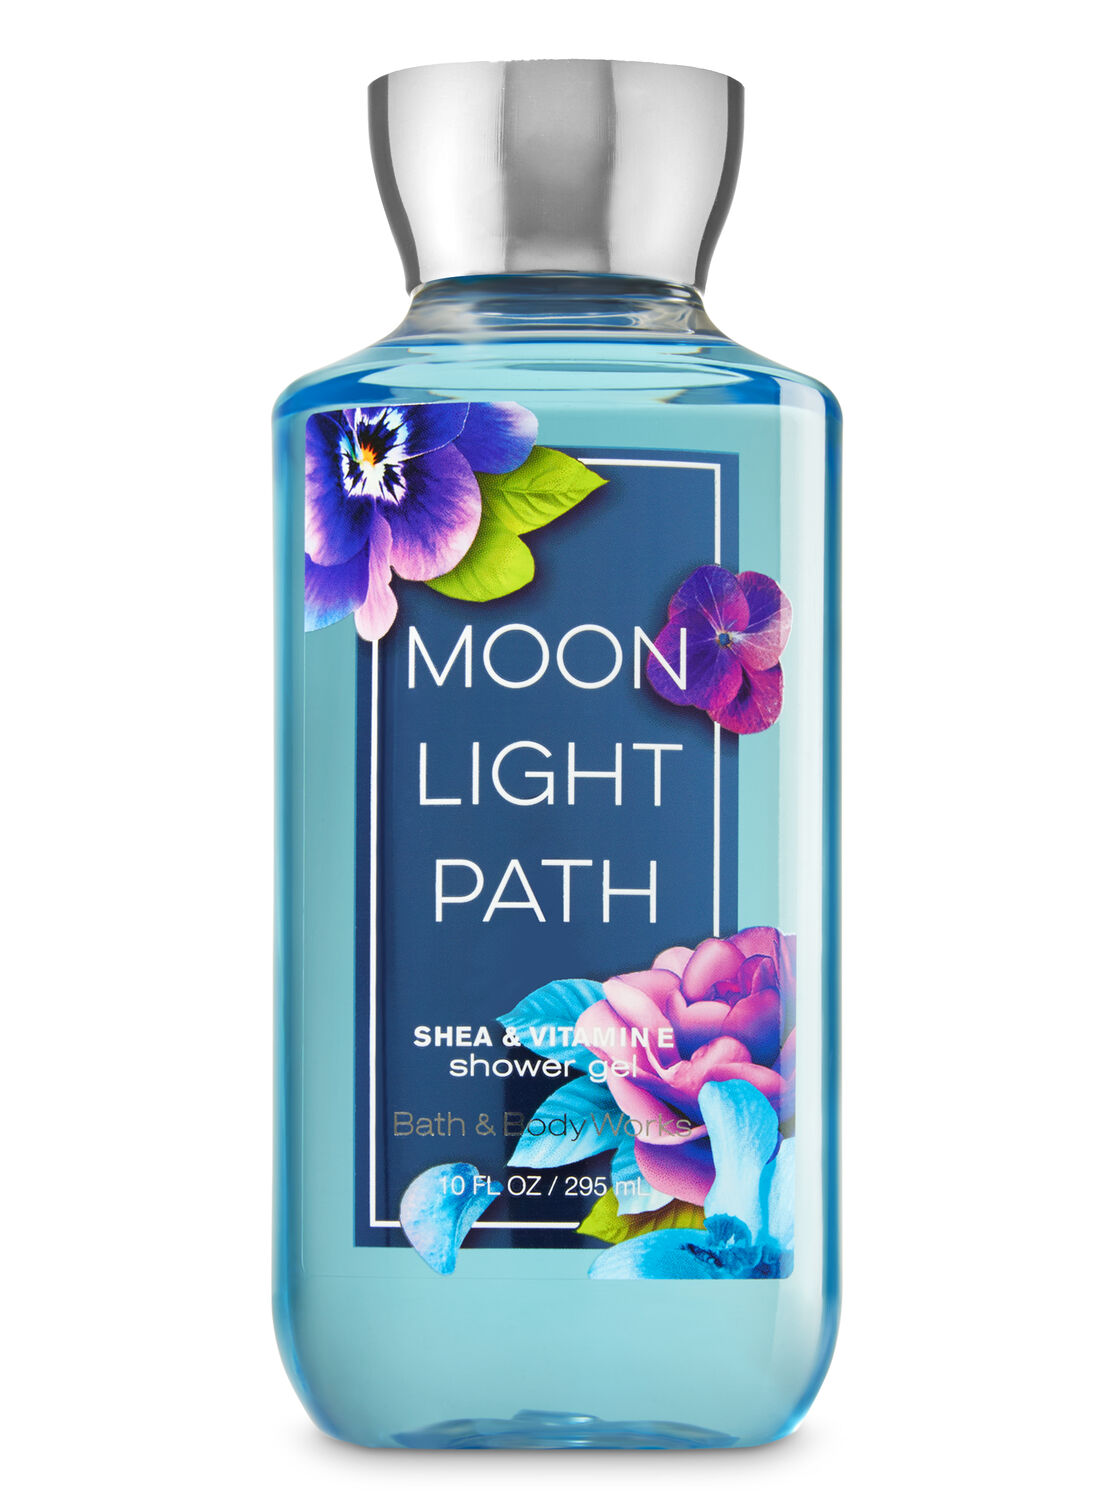 Moonlight Path Shower Gel - Signature Collection   Bath & Body Works